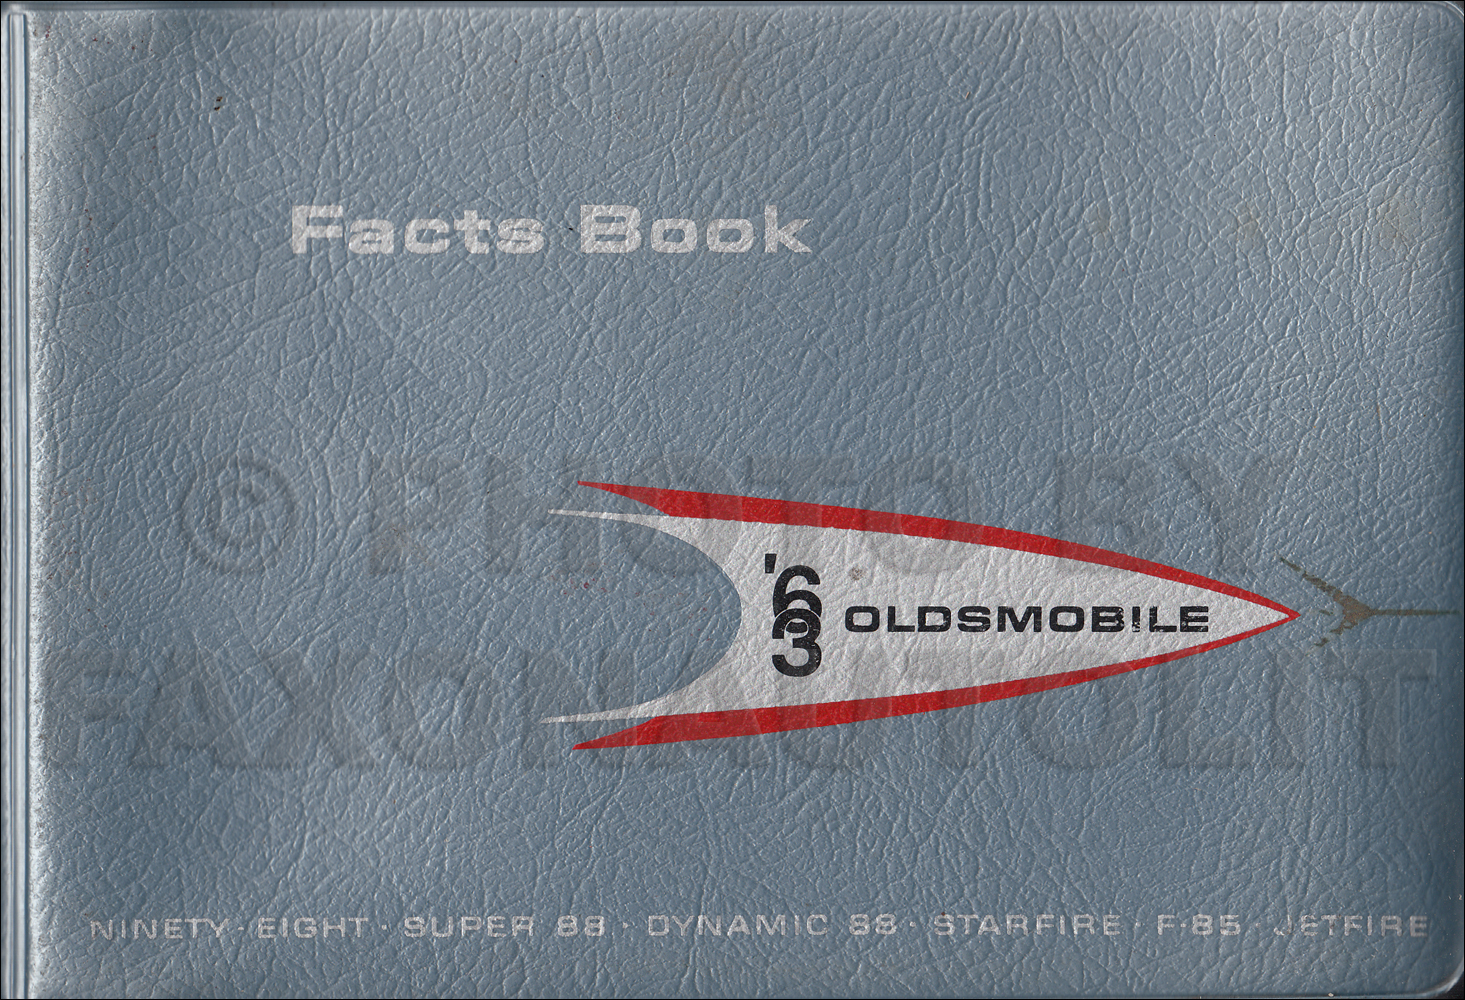 1963 Oldsmobile Facts Book Original